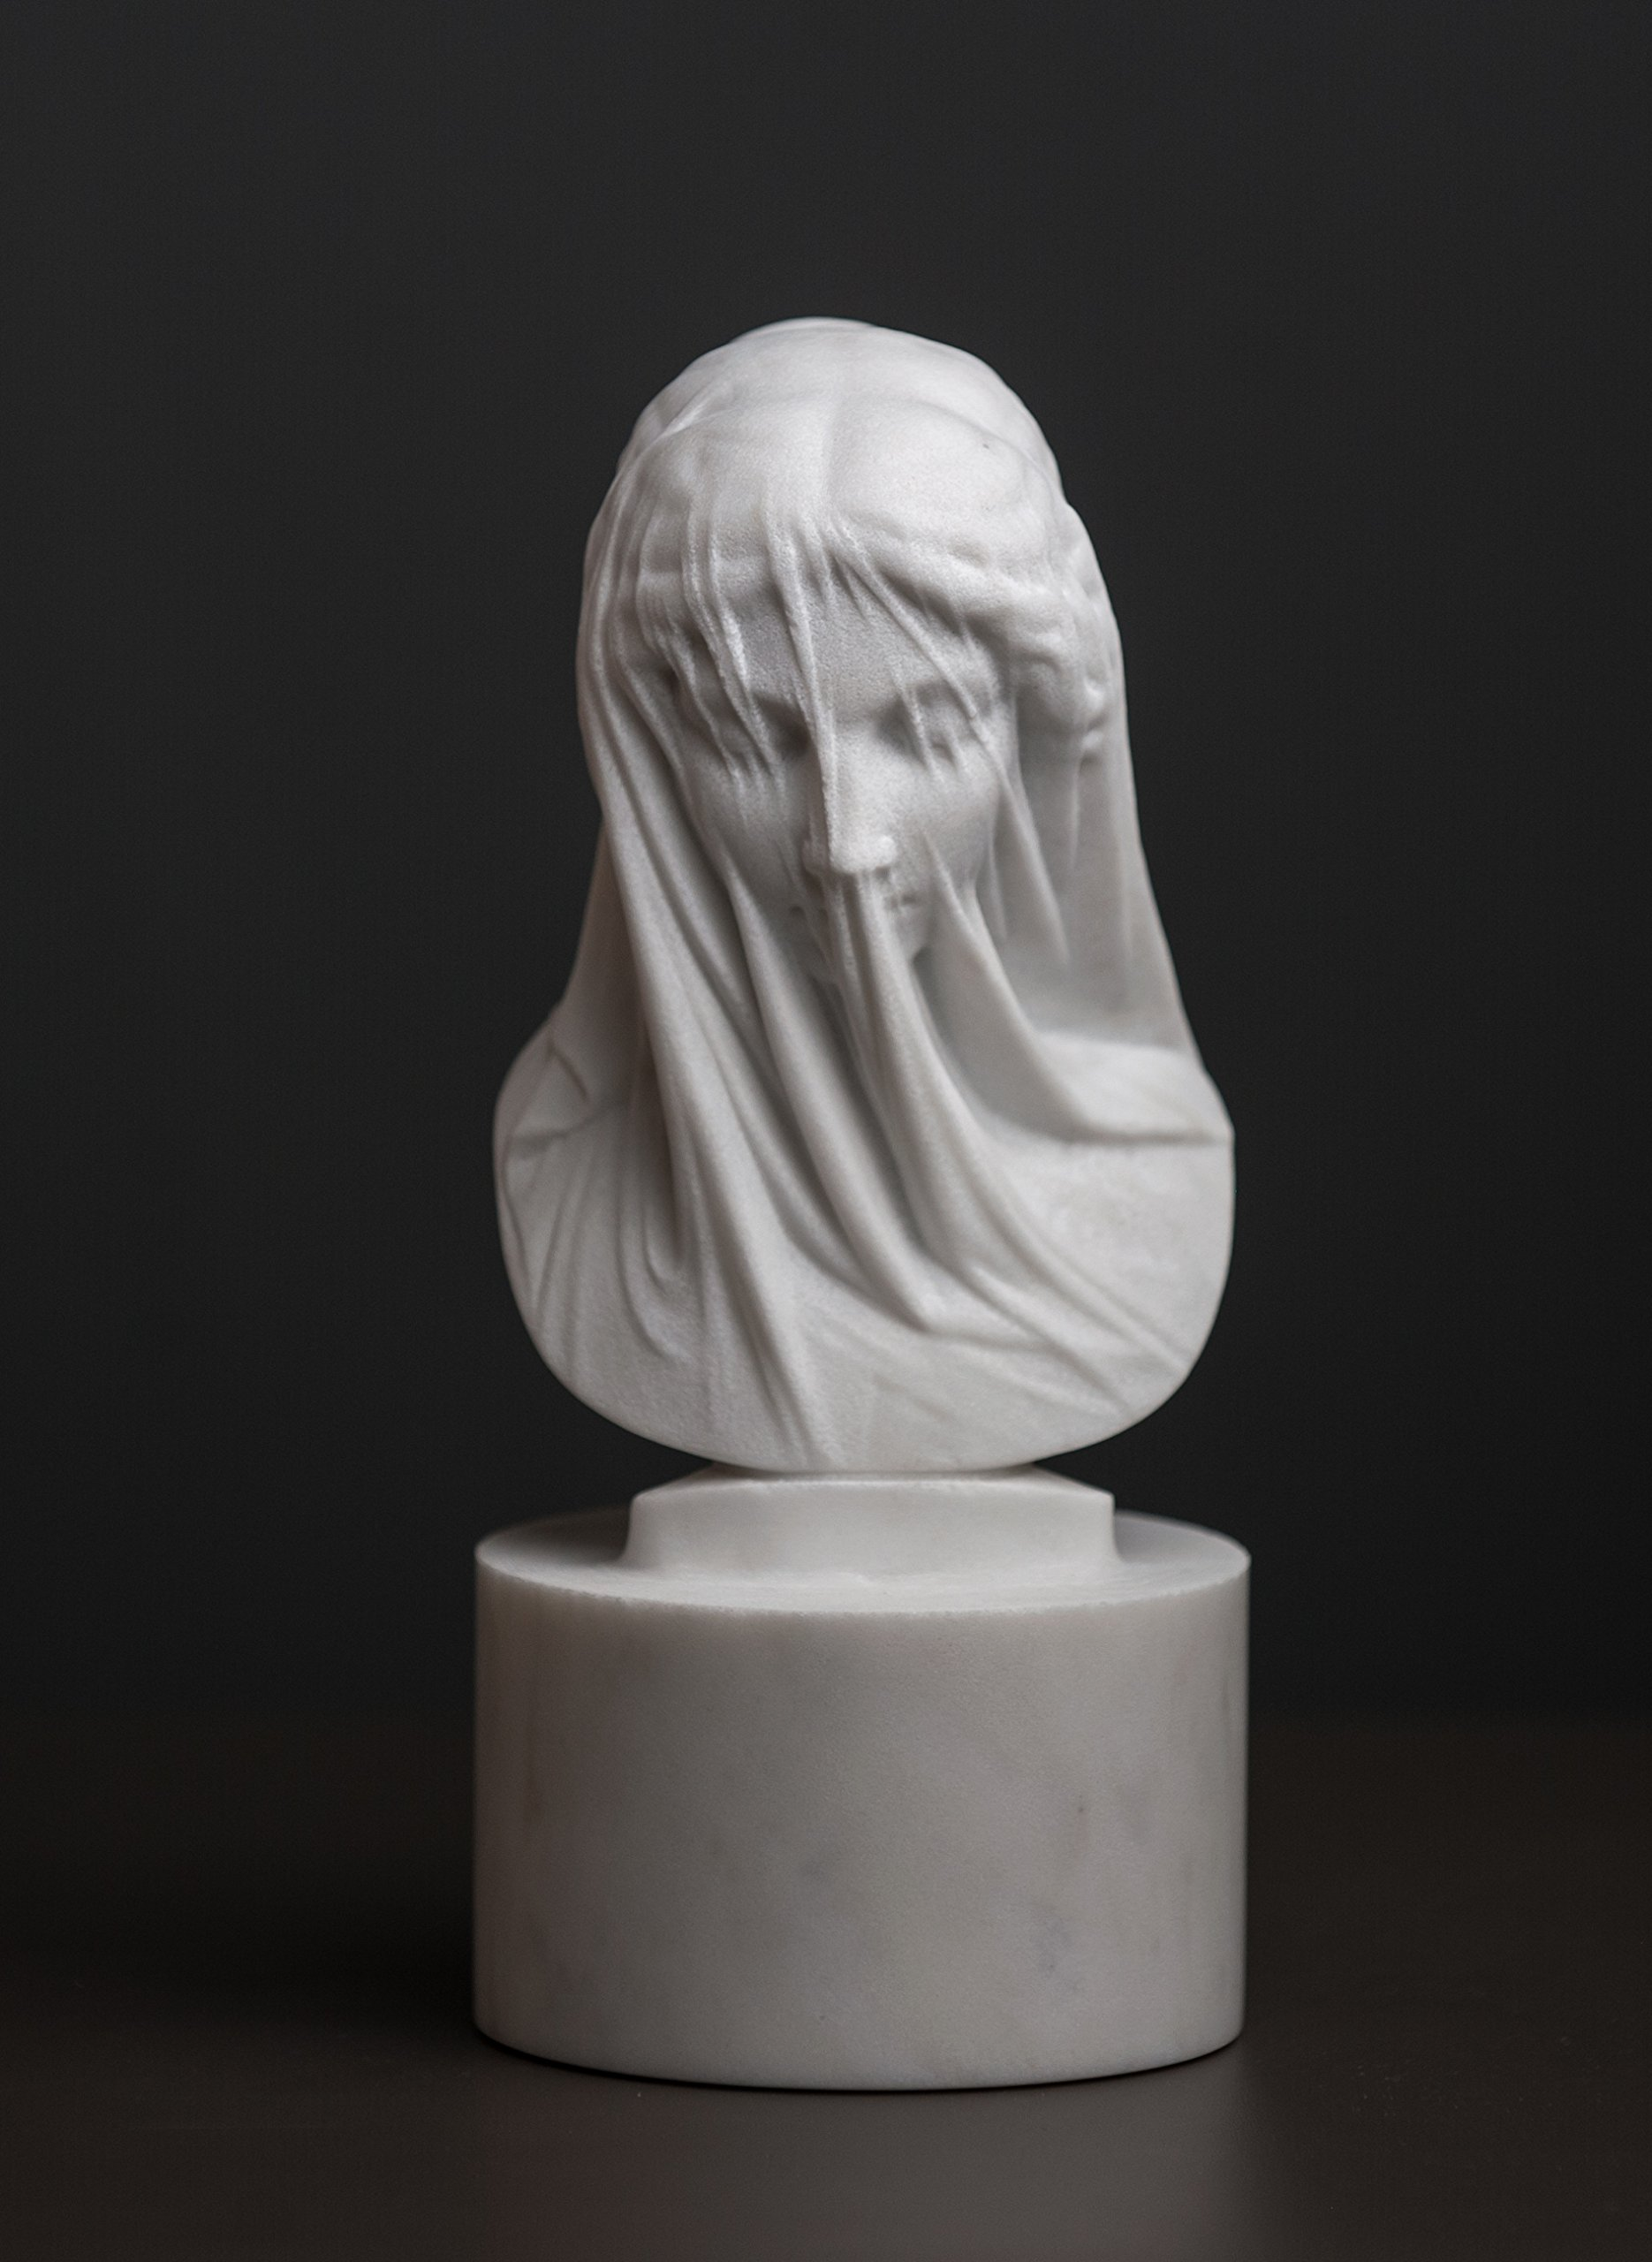 Marble Bust of The Veiled Virgin Mary by Strazza Carved Statue Artist Sculpture by Greek Marble Art